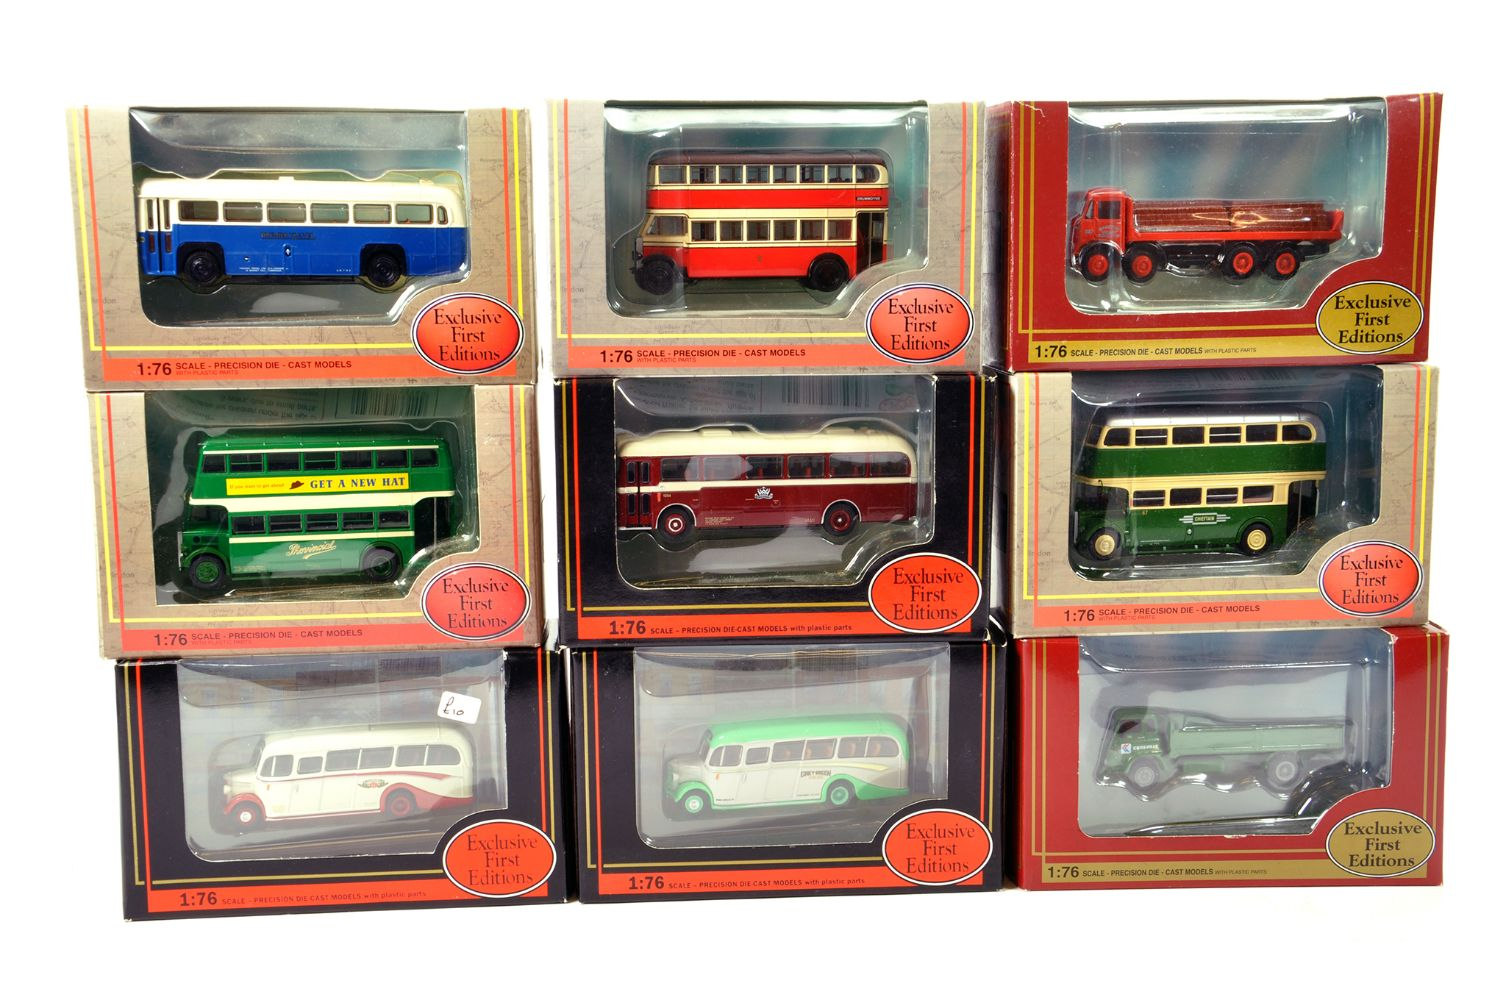 September Specialist Toys, Models & Collectables